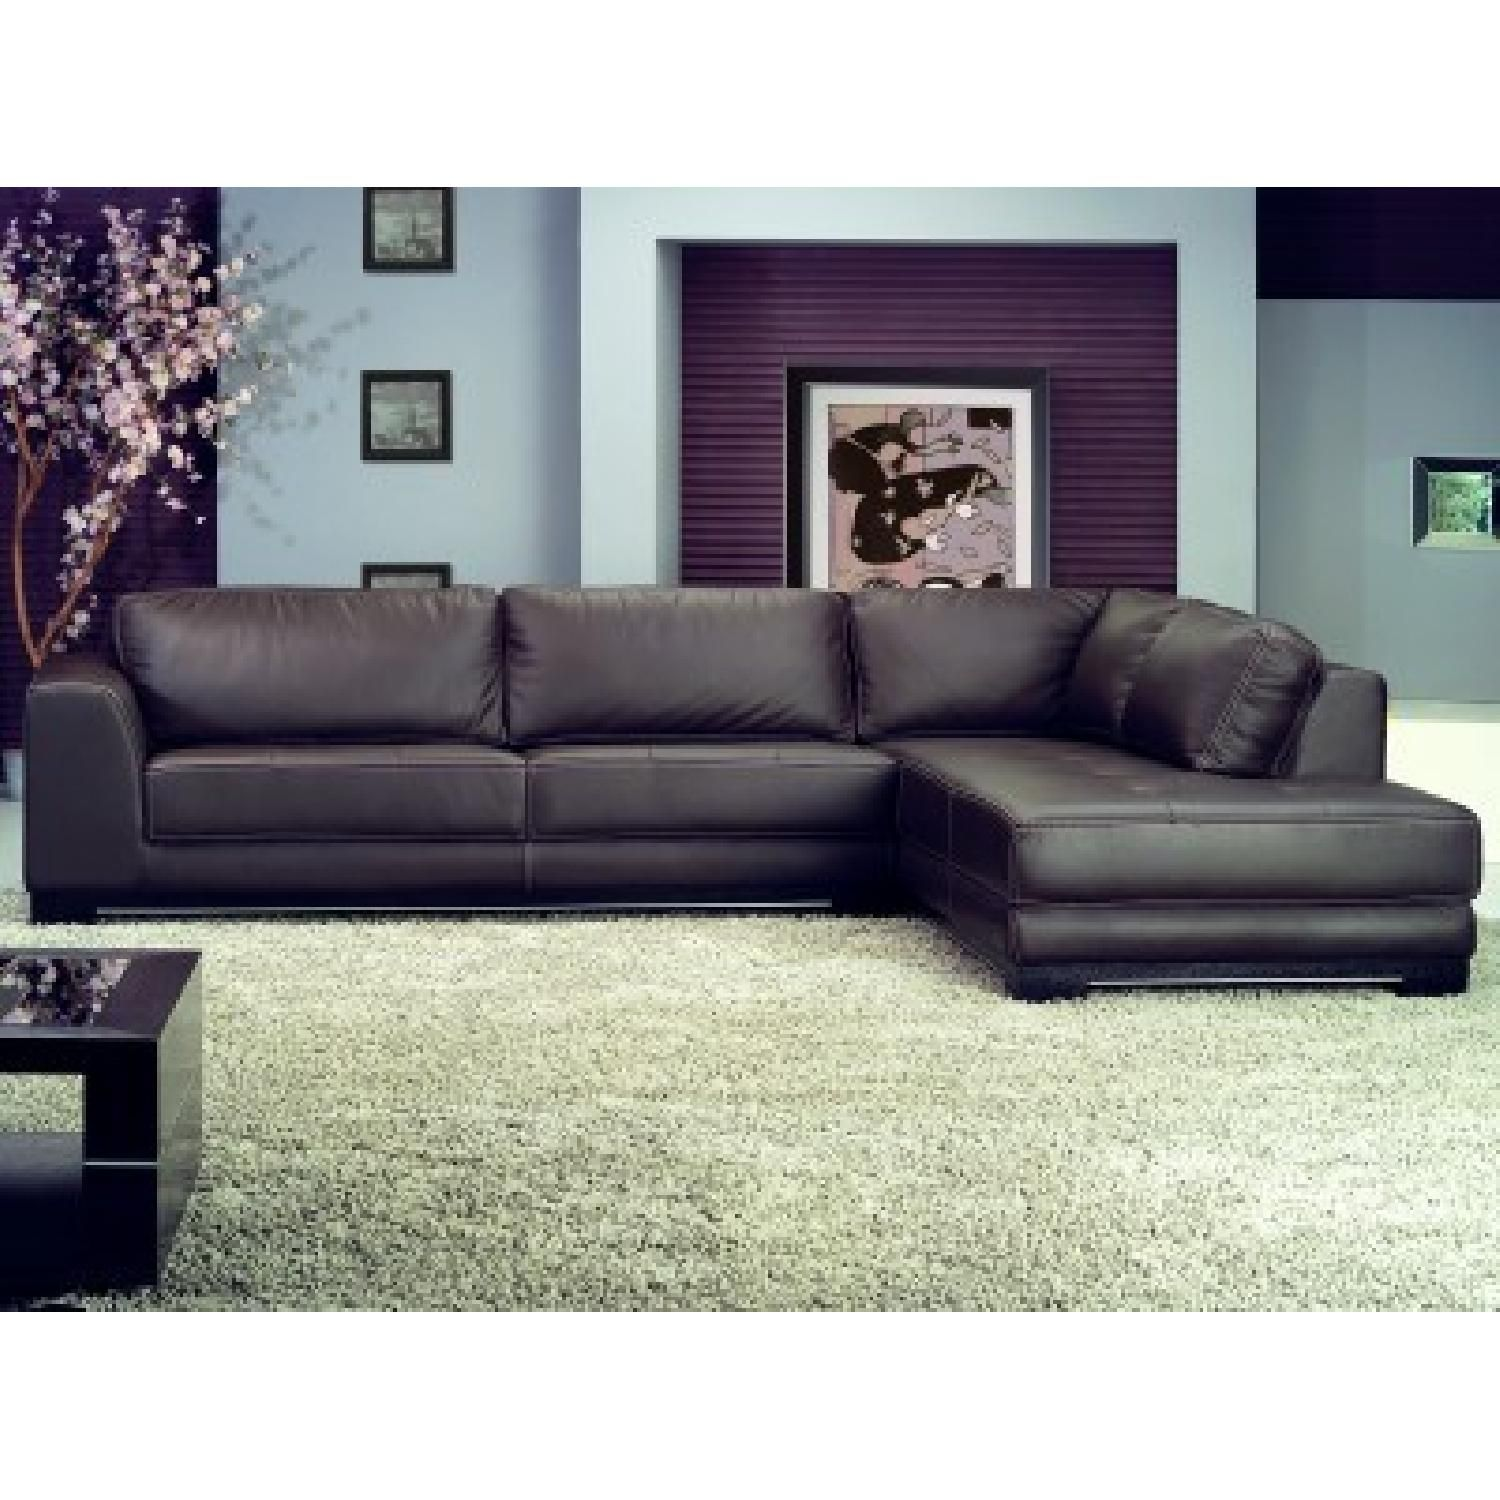 $1169 for sectional New Soho sectional with bump chaise in ether